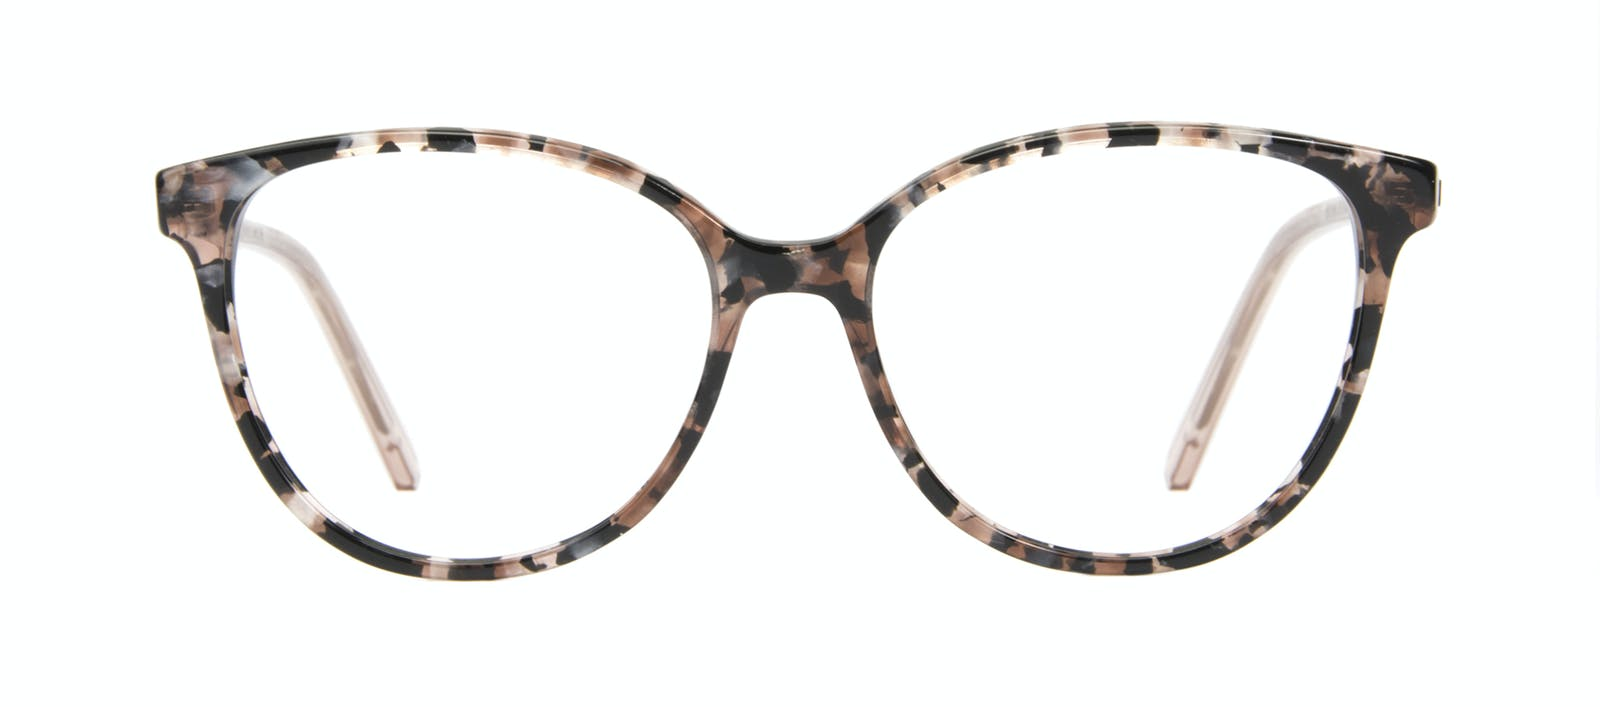 8a1881ae2a Affordable Fashion Glasses Round Eyeglasses Women Imagine II Pink Tortoise  Front